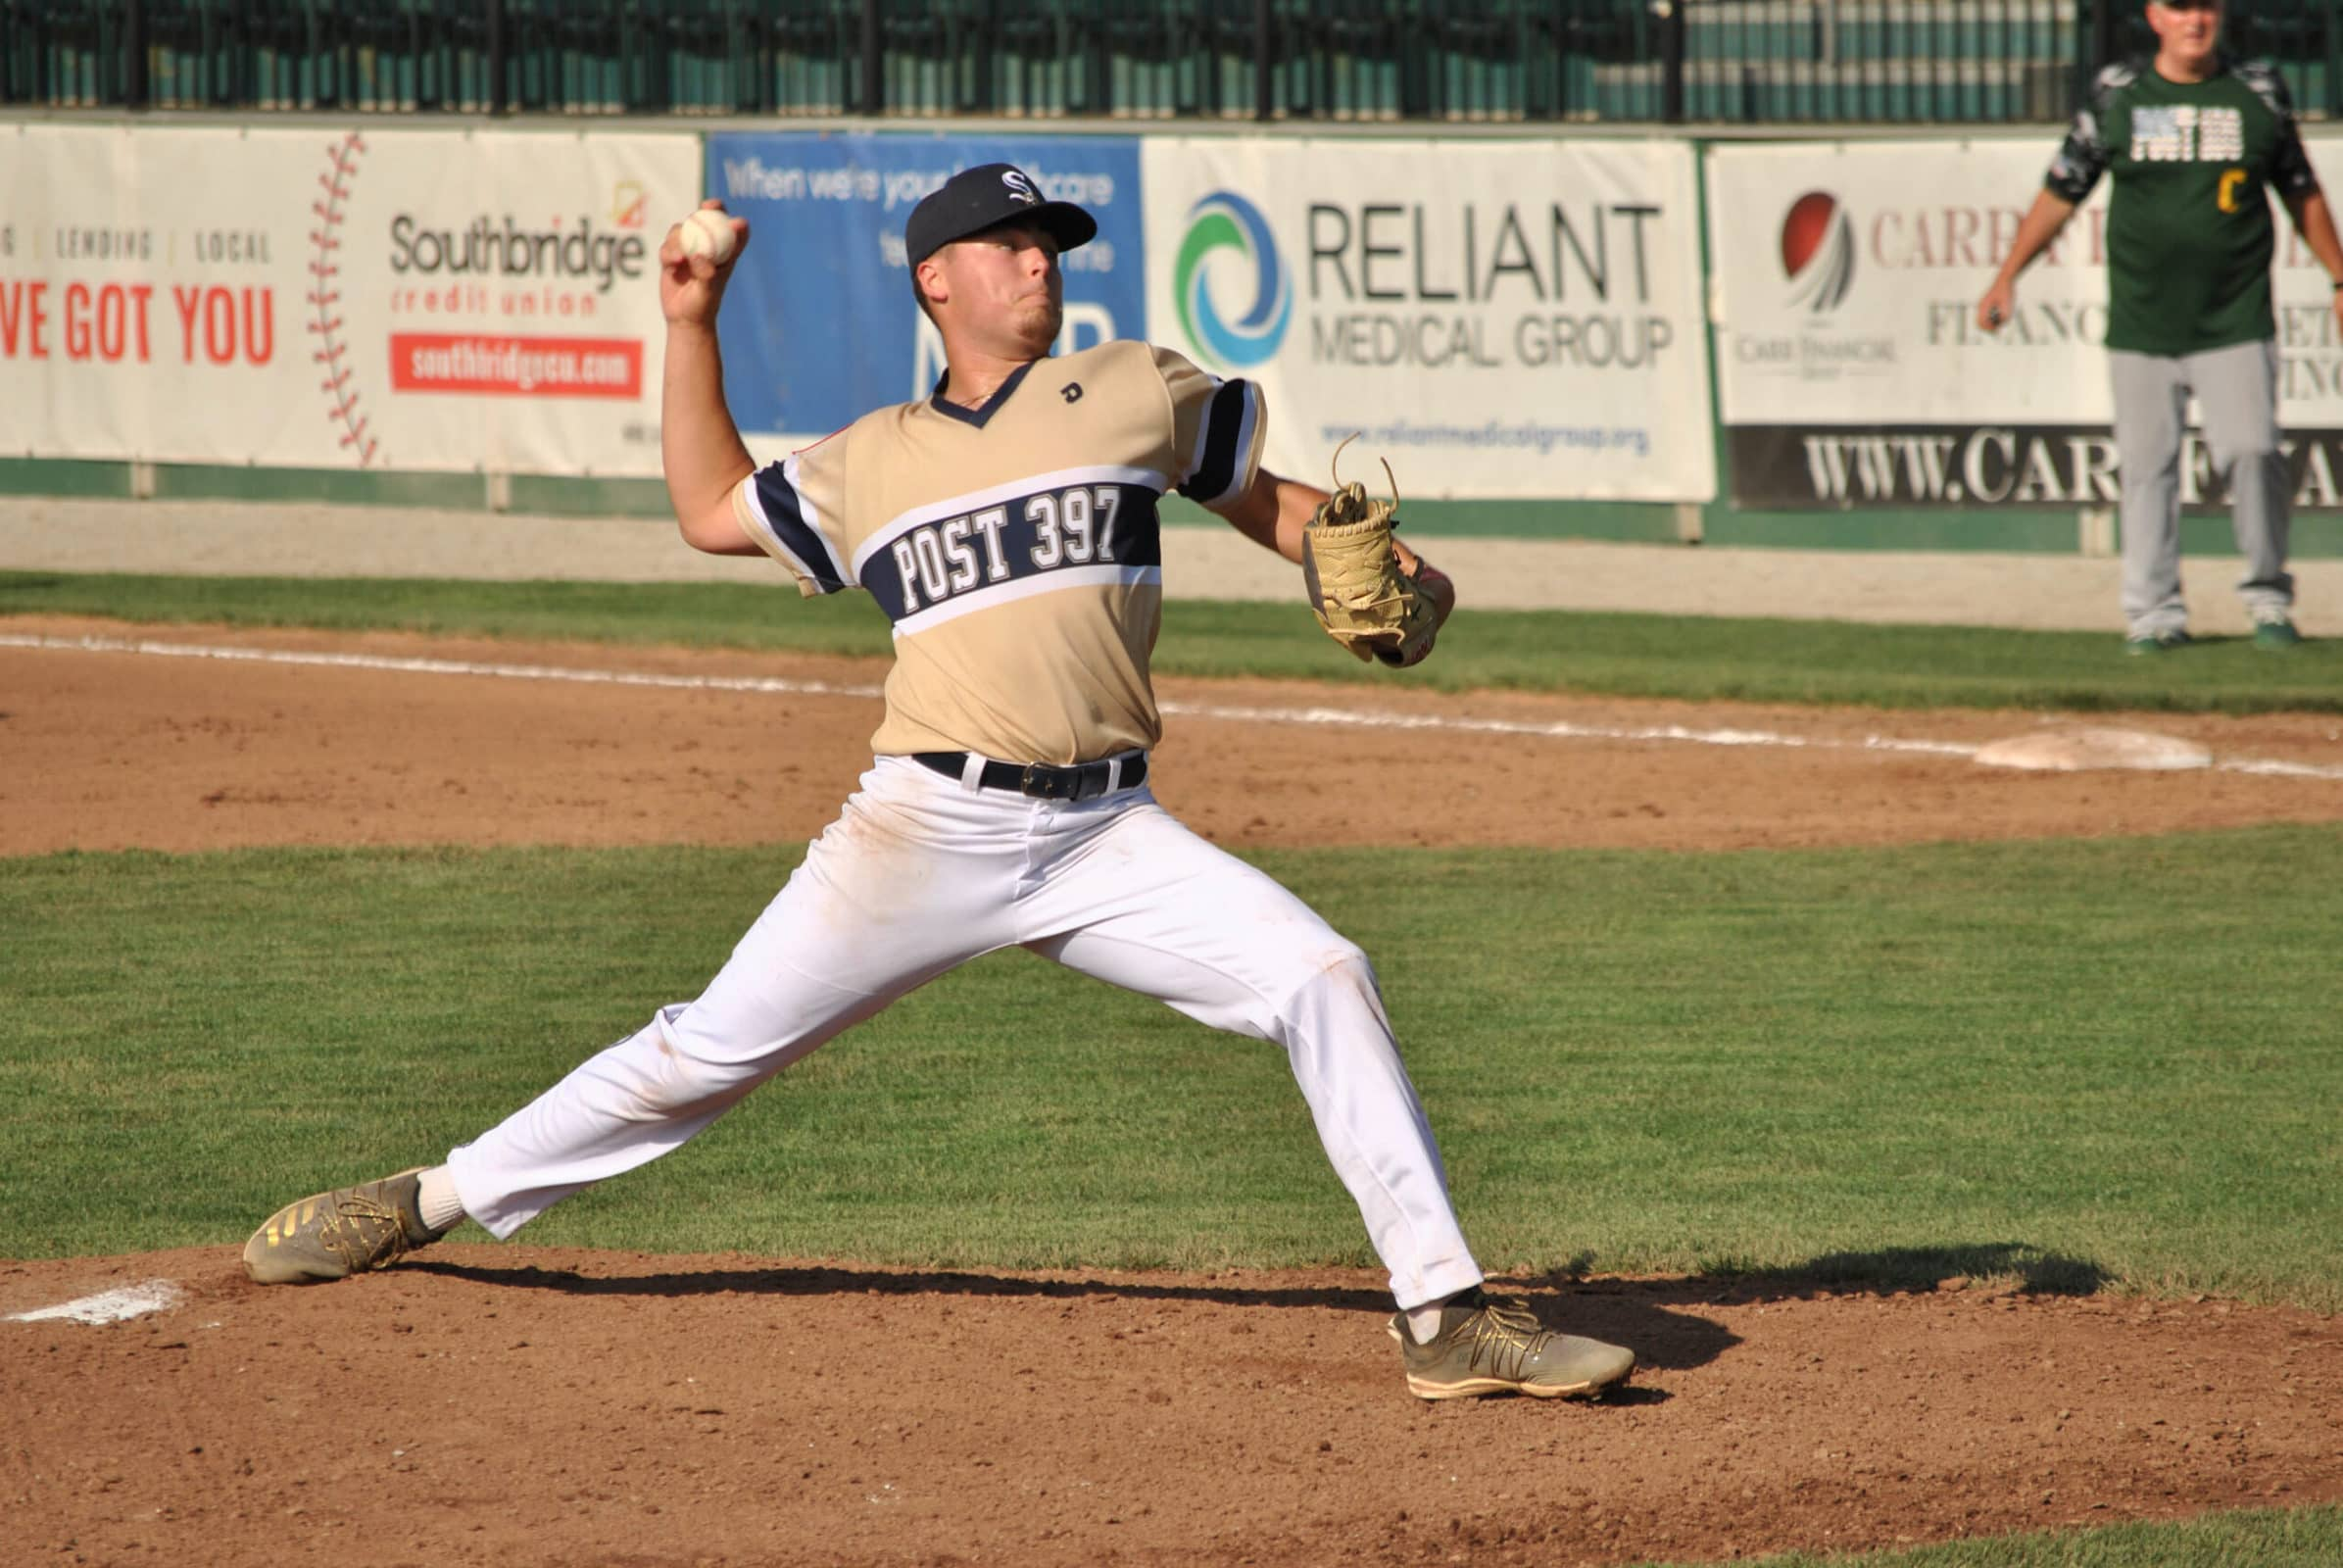 Shrewsbury's pitcher makes a pitch during his team's victory over Sturbridge.